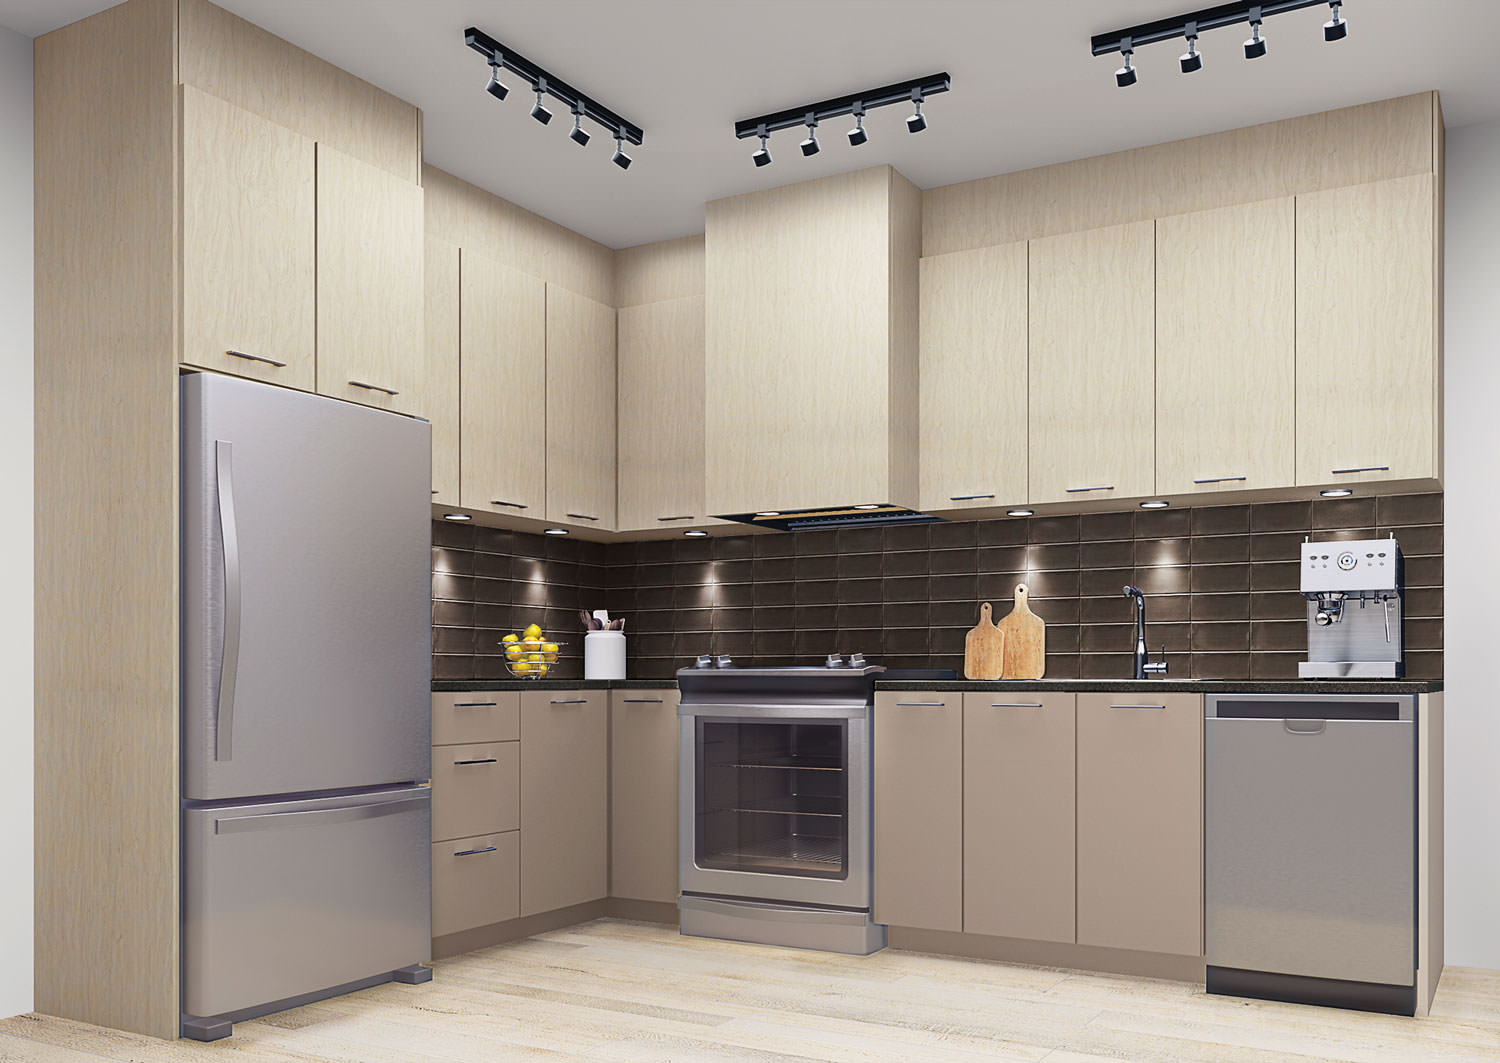 Kitchen-Dark_View01-2019_12_19